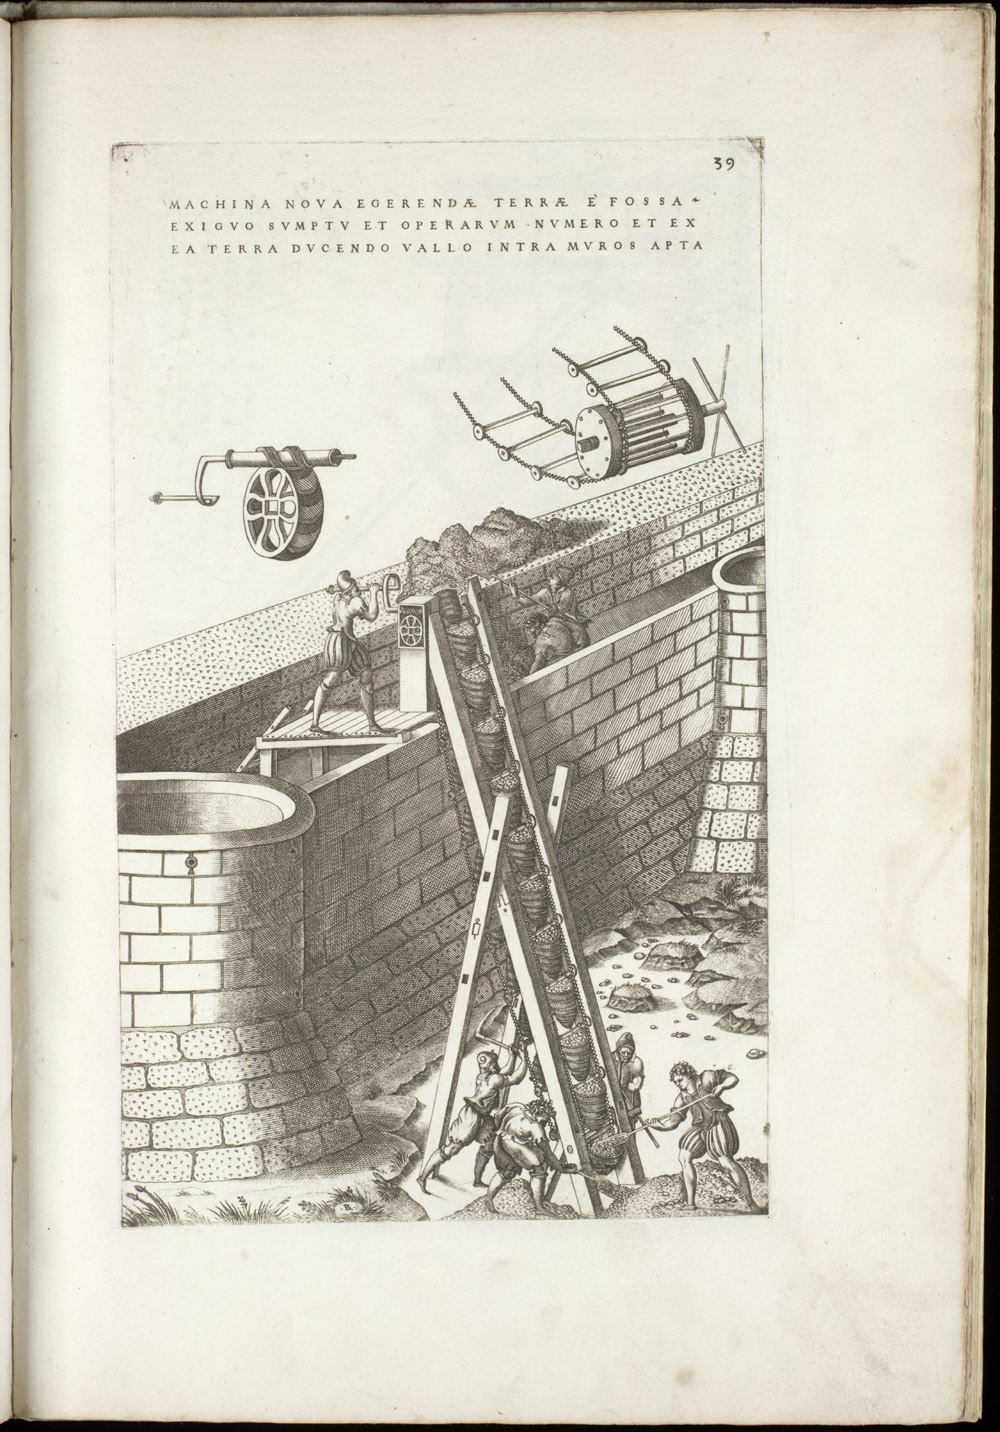 Plate 39 [Bucket chain for hauling earth],  Image number:SIL4-2-111a